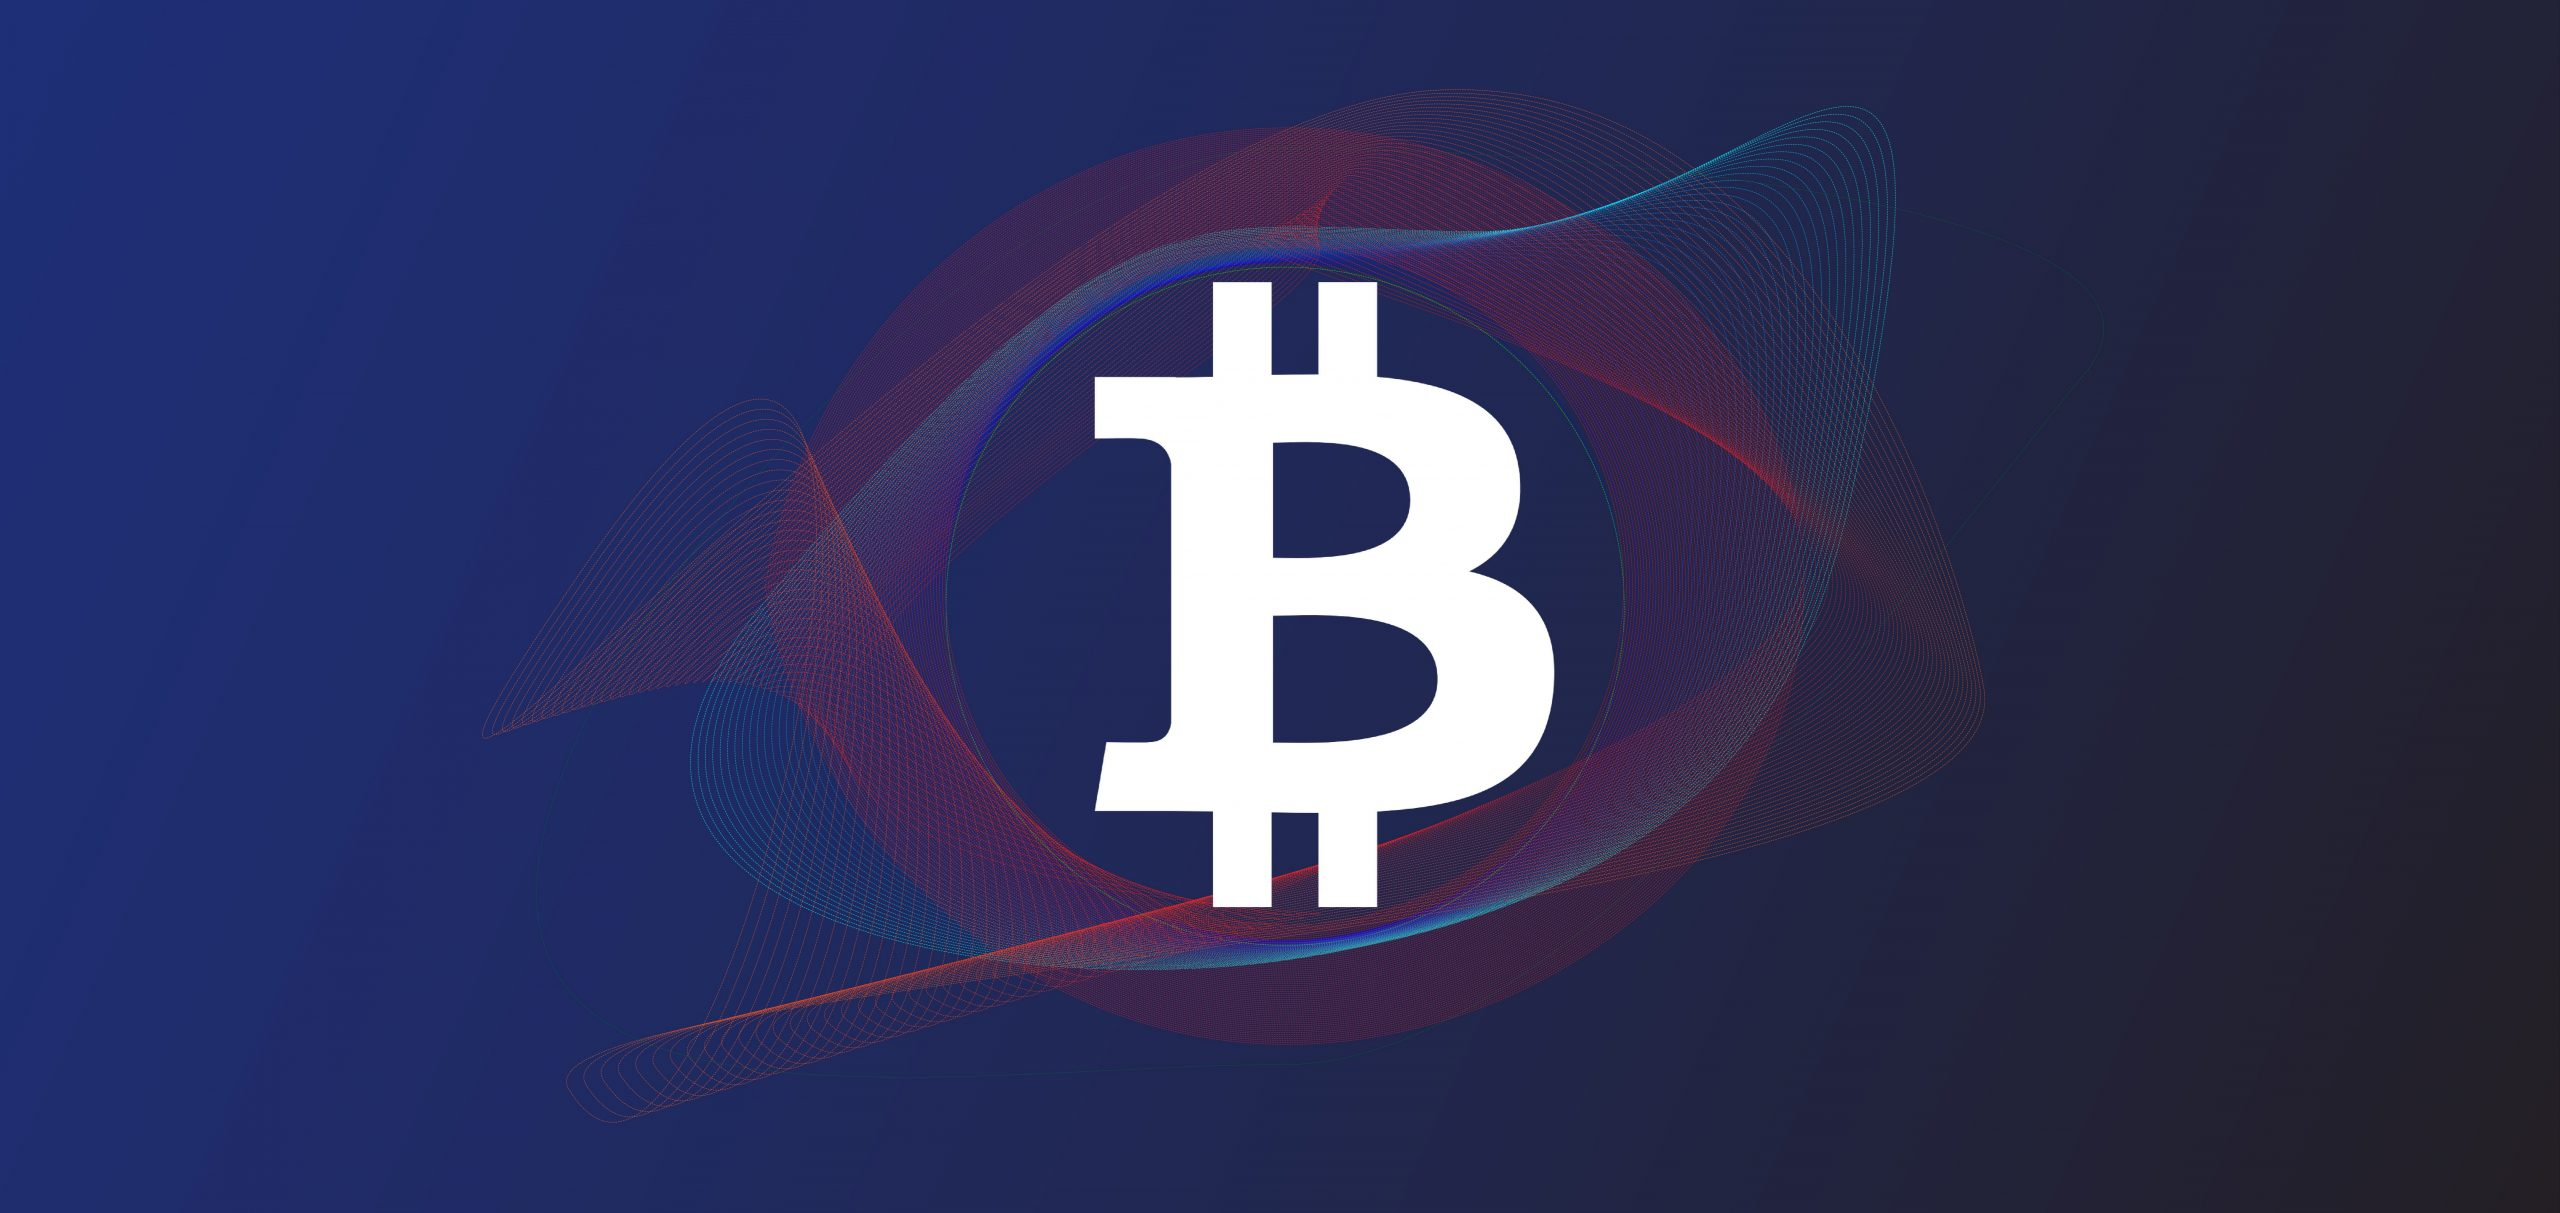 Bitcoin in abstract background